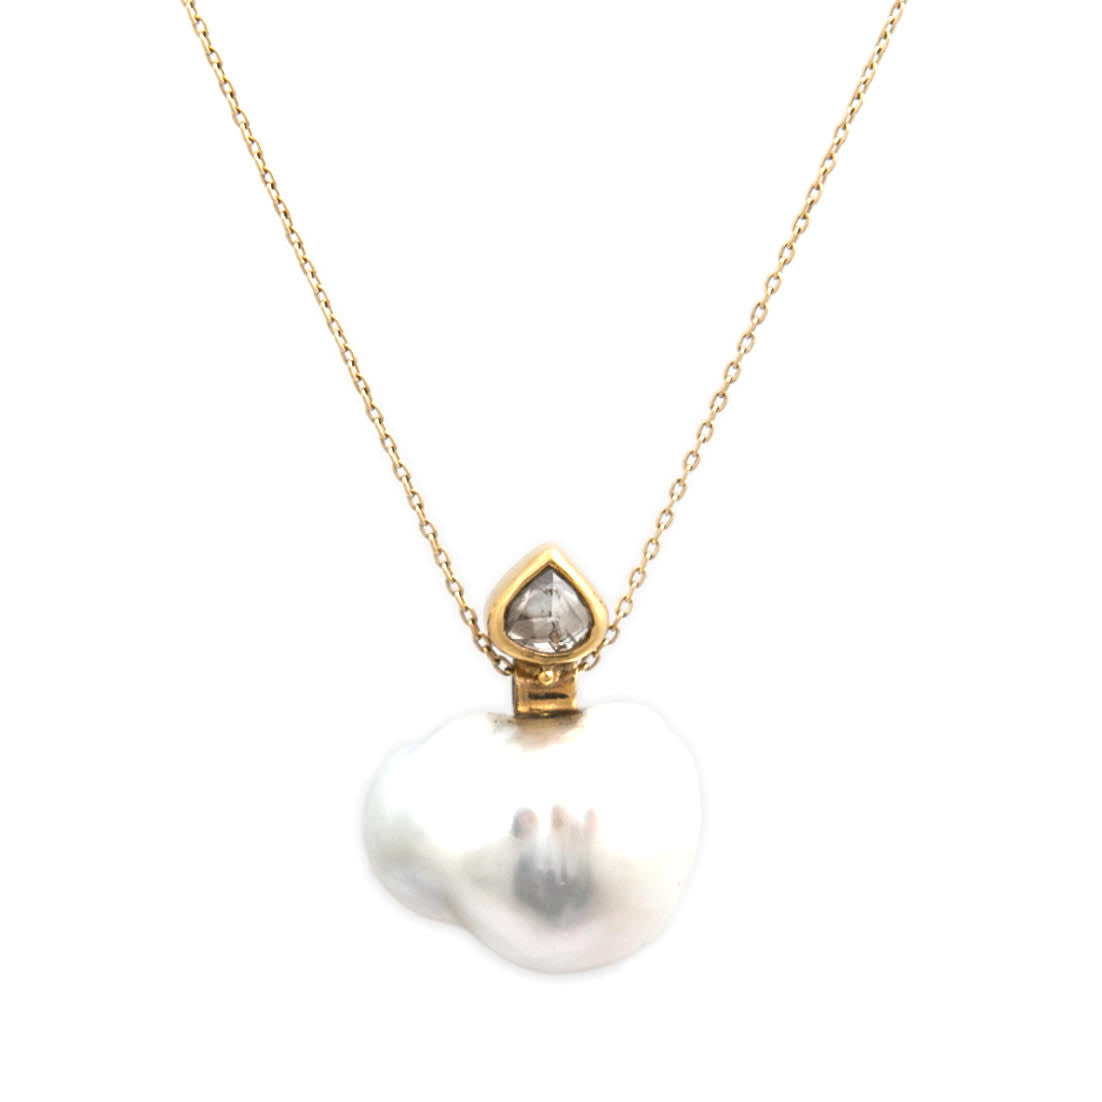 cultured louise in product diamond gold by jewellers yellow necklaces pendant necklace ann pearl detail